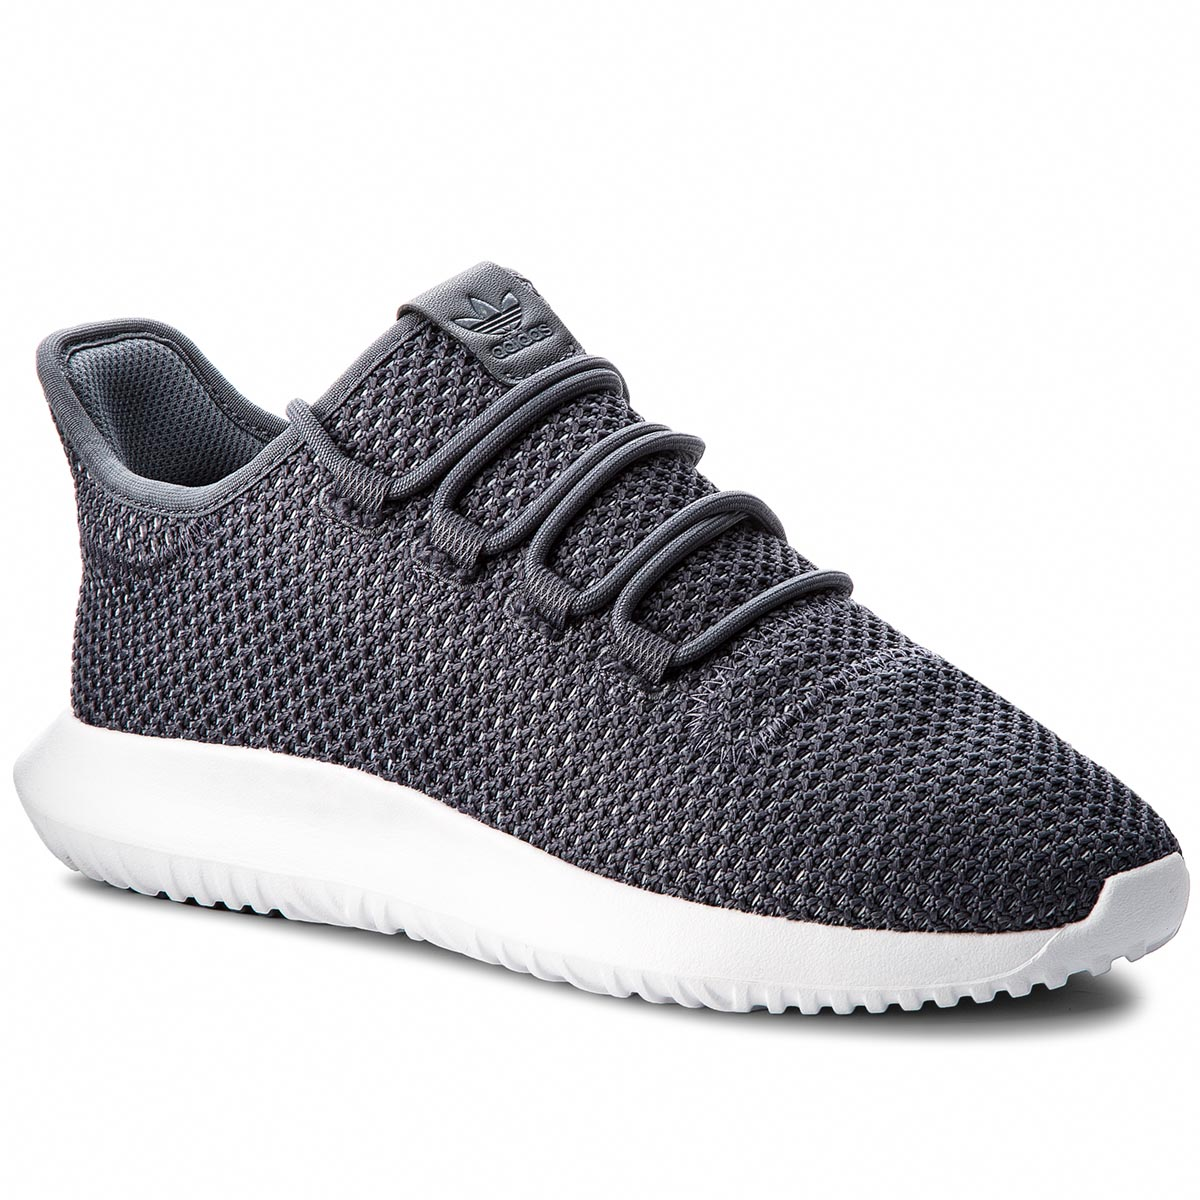 check out be726 a4865 Pantofi adidas Tubular Shadow Ck B37713 Onix Clegre Ftwwht